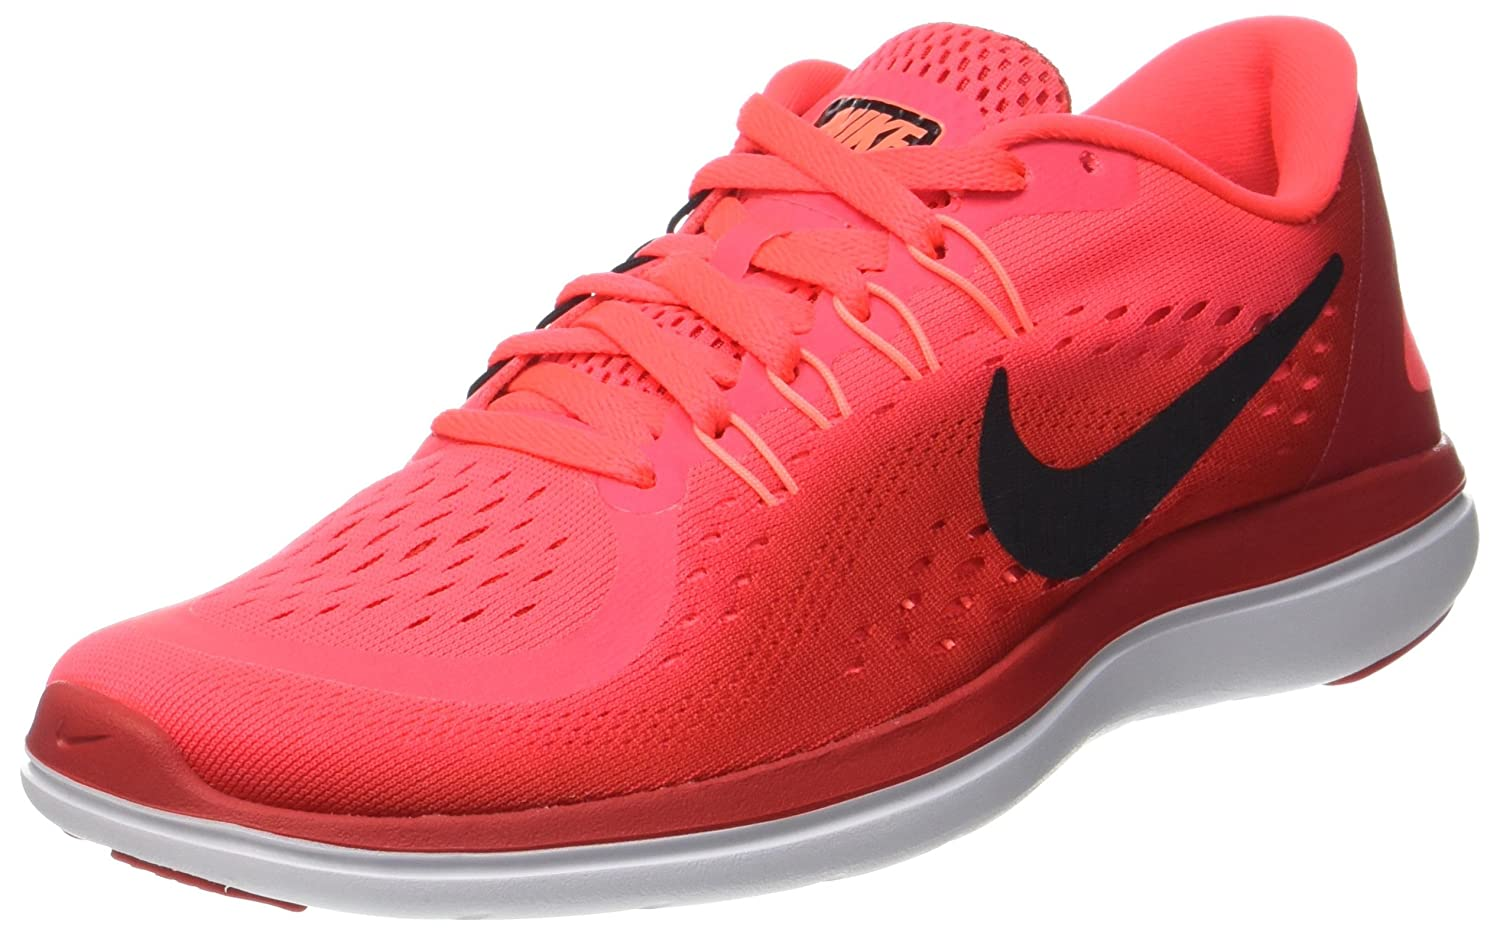 NIKE Flex 2017 RN B01N3KV1GP 7 B(M) US|Solar Red/Black/University Red